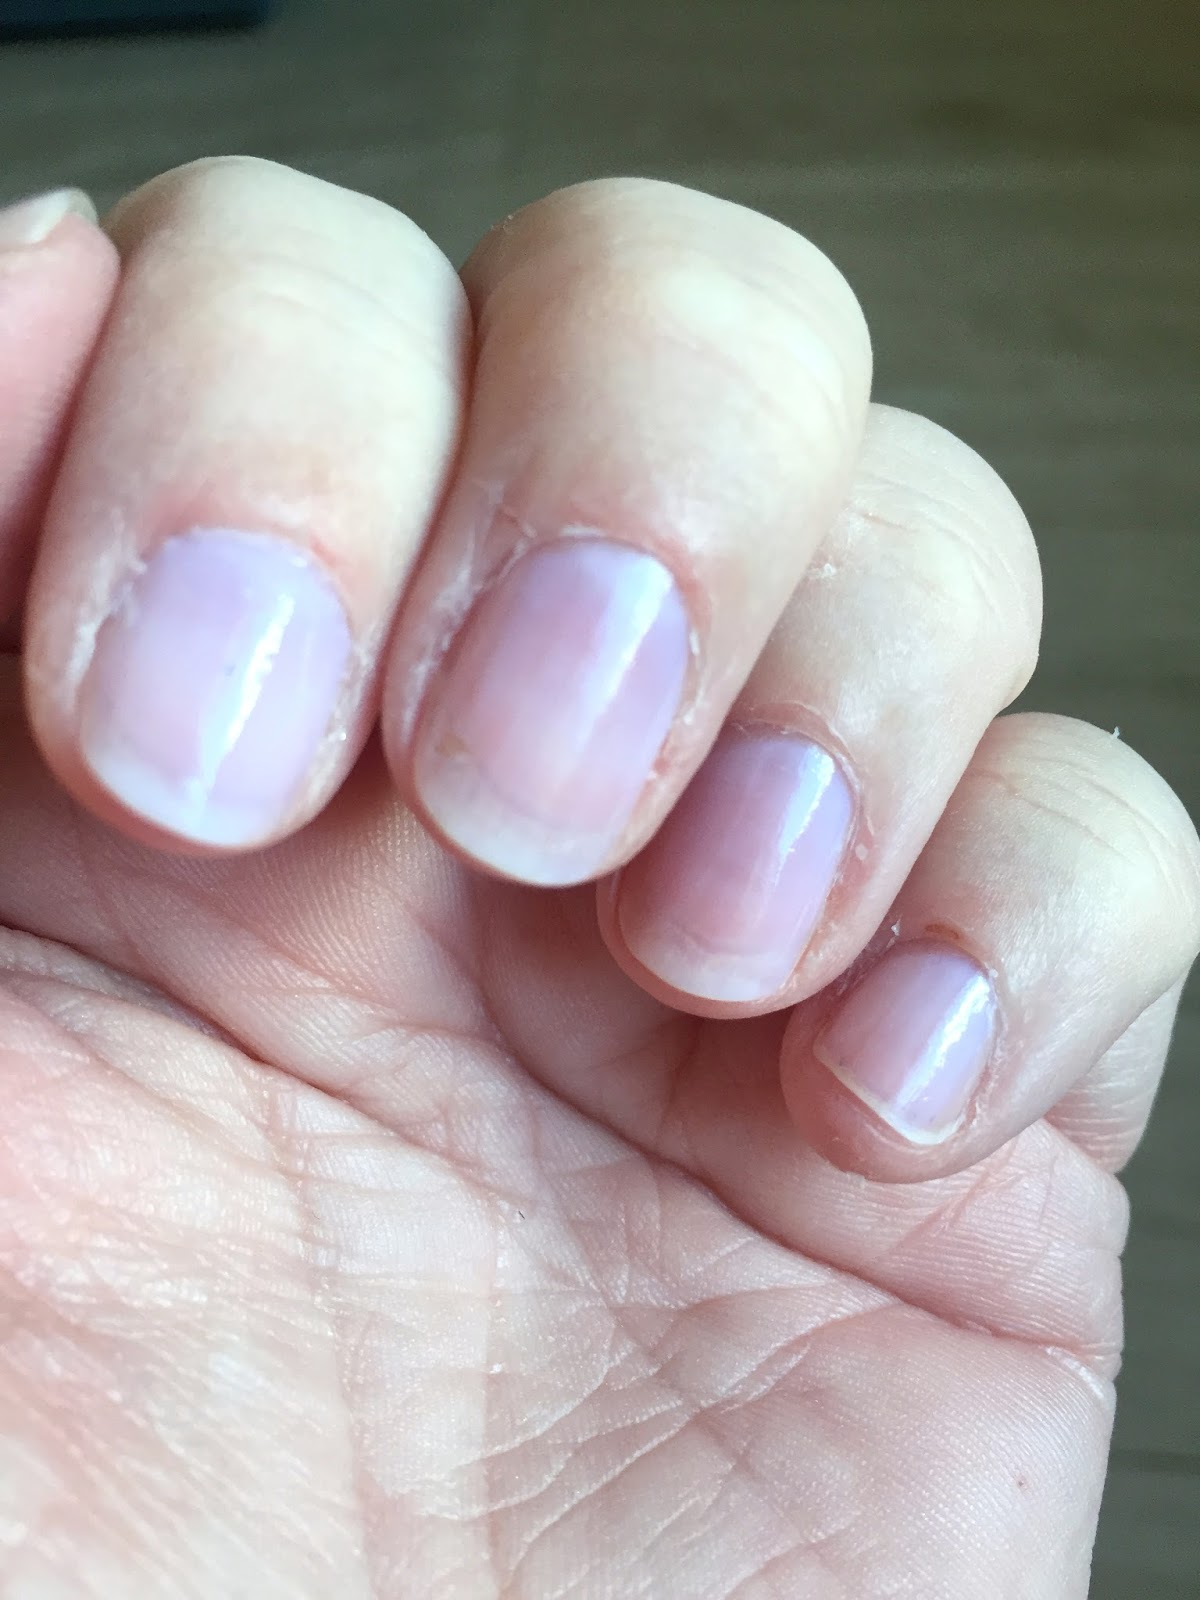 my gel nails arent curing photo - 2